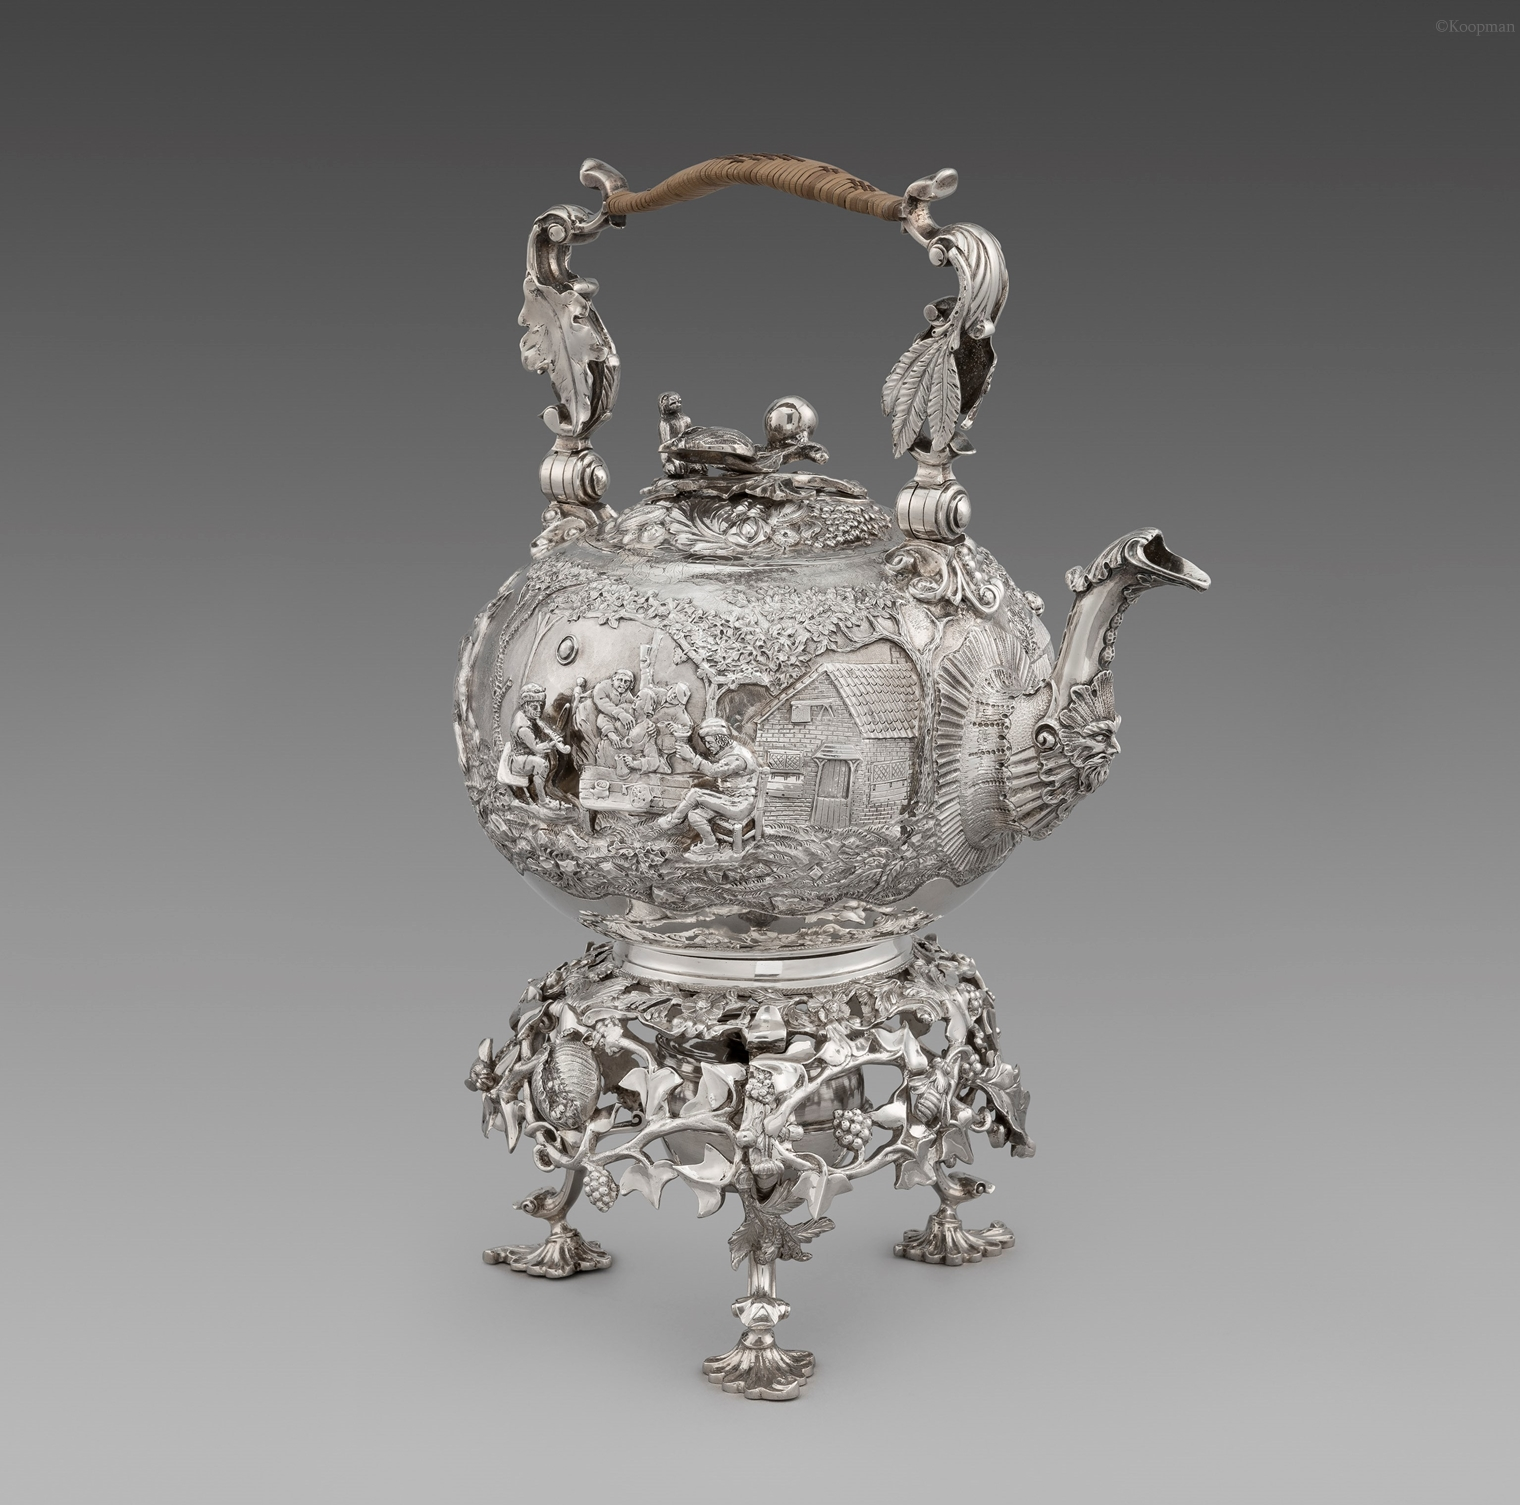 A Magnificent Regency Tea Kettle on Stand